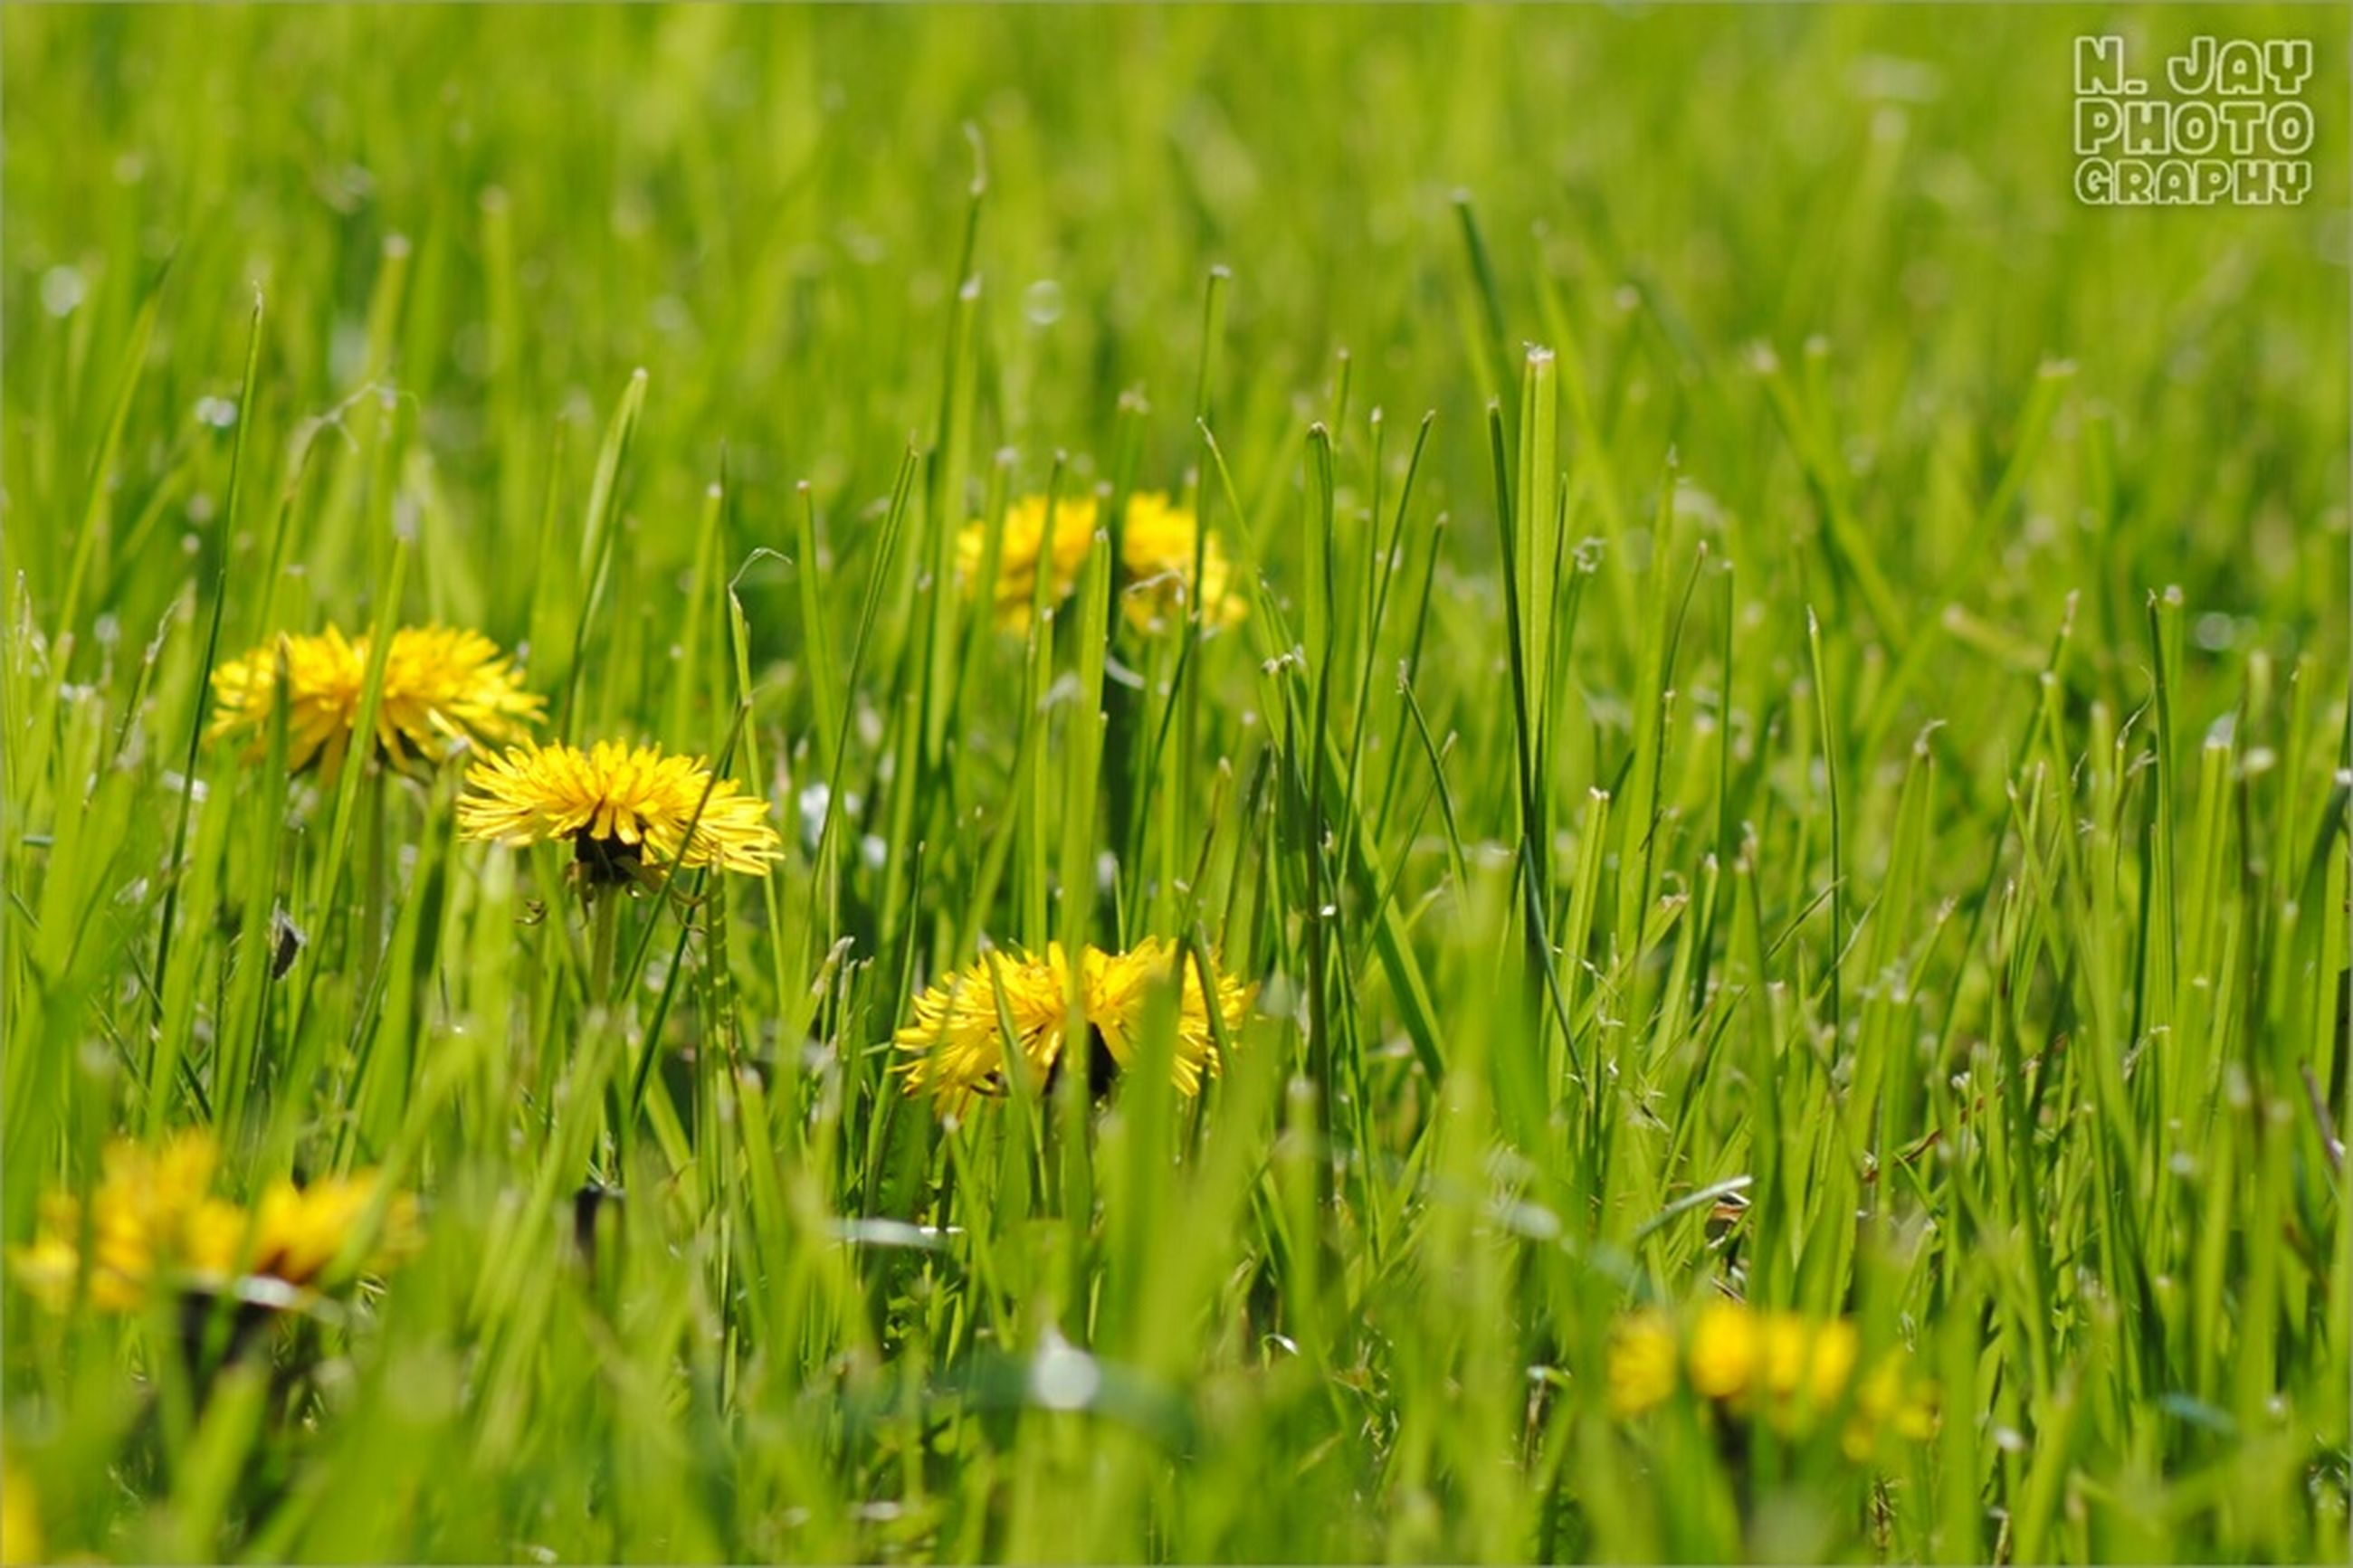 flower, animal themes, insect, growth, yellow, animals in the wild, field, wildlife, one animal, grass, freshness, green color, beauty in nature, nature, fragility, plant, selective focus, focus on foreground, close-up, day